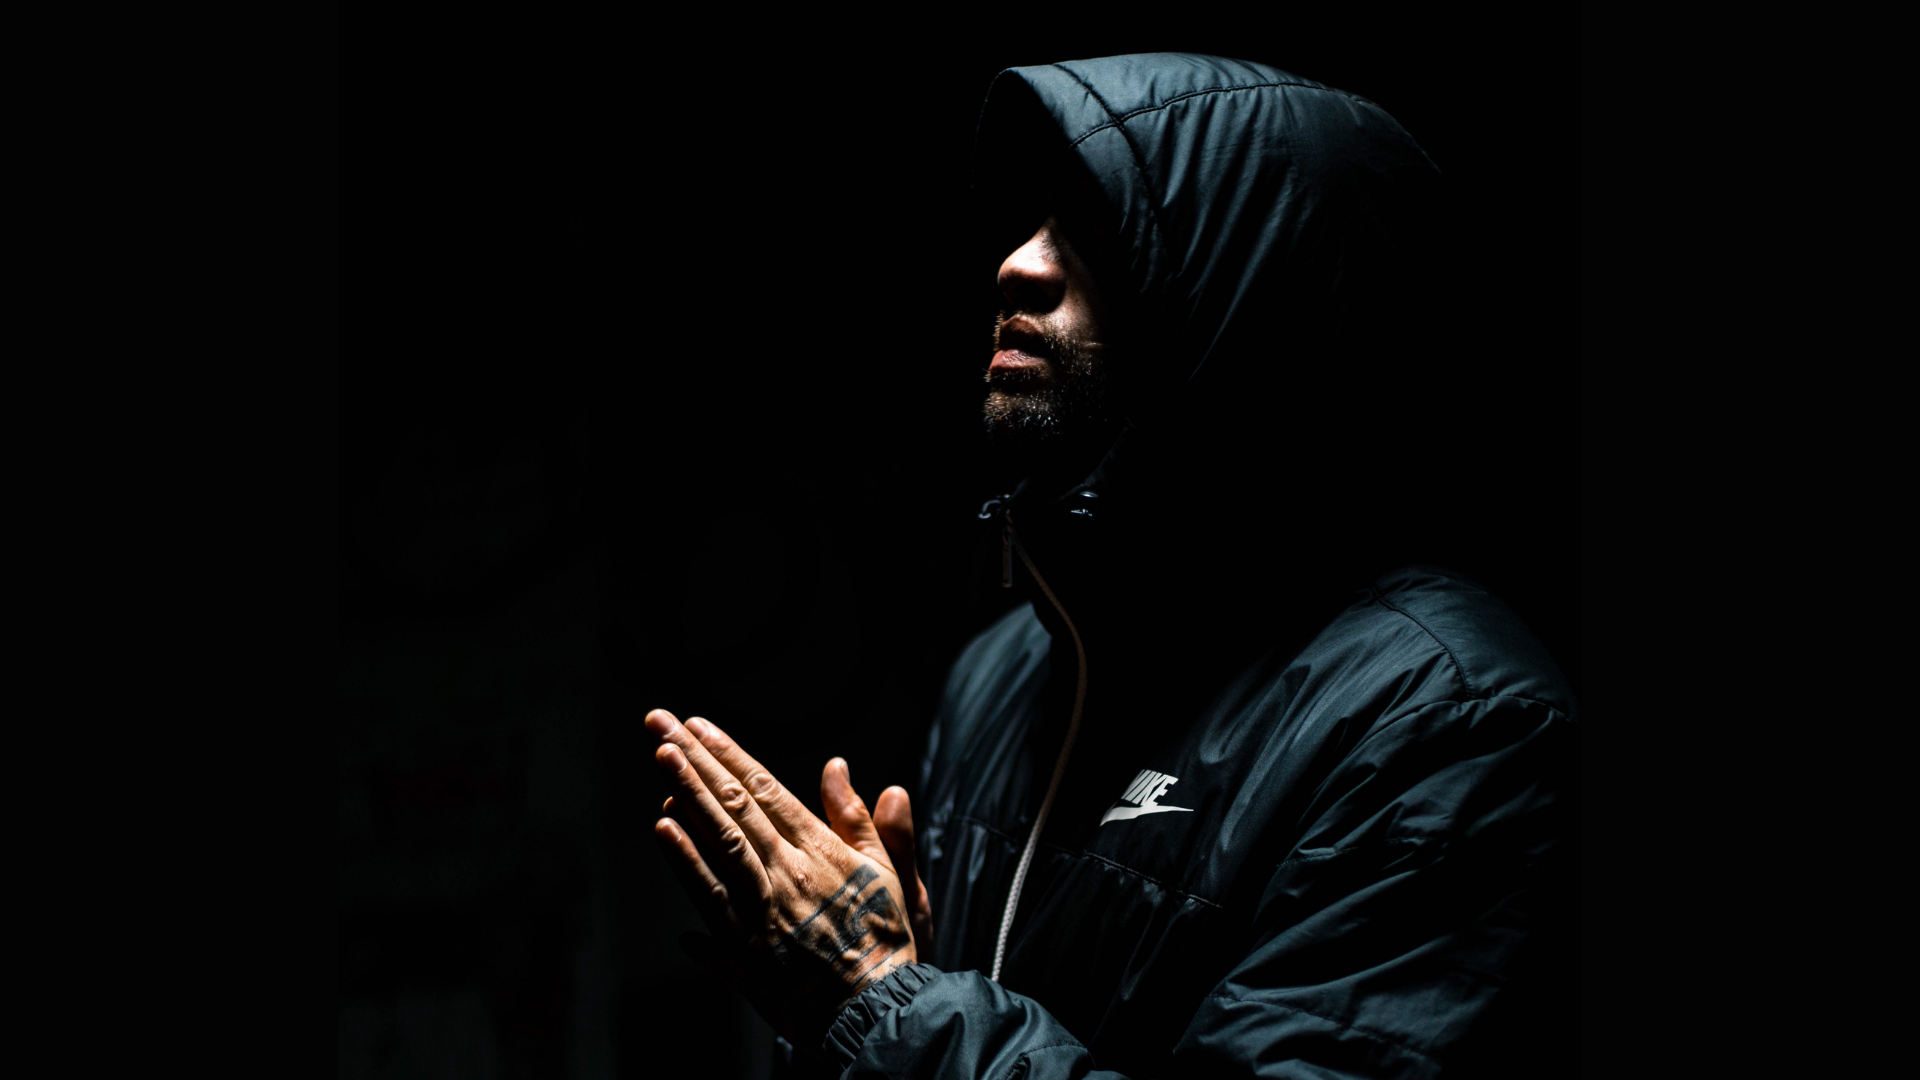 DALLAS DA DON  OVERCOMES 'PATH OF TEMPTATIONS'  NEW EP OUT ON JULY 12!